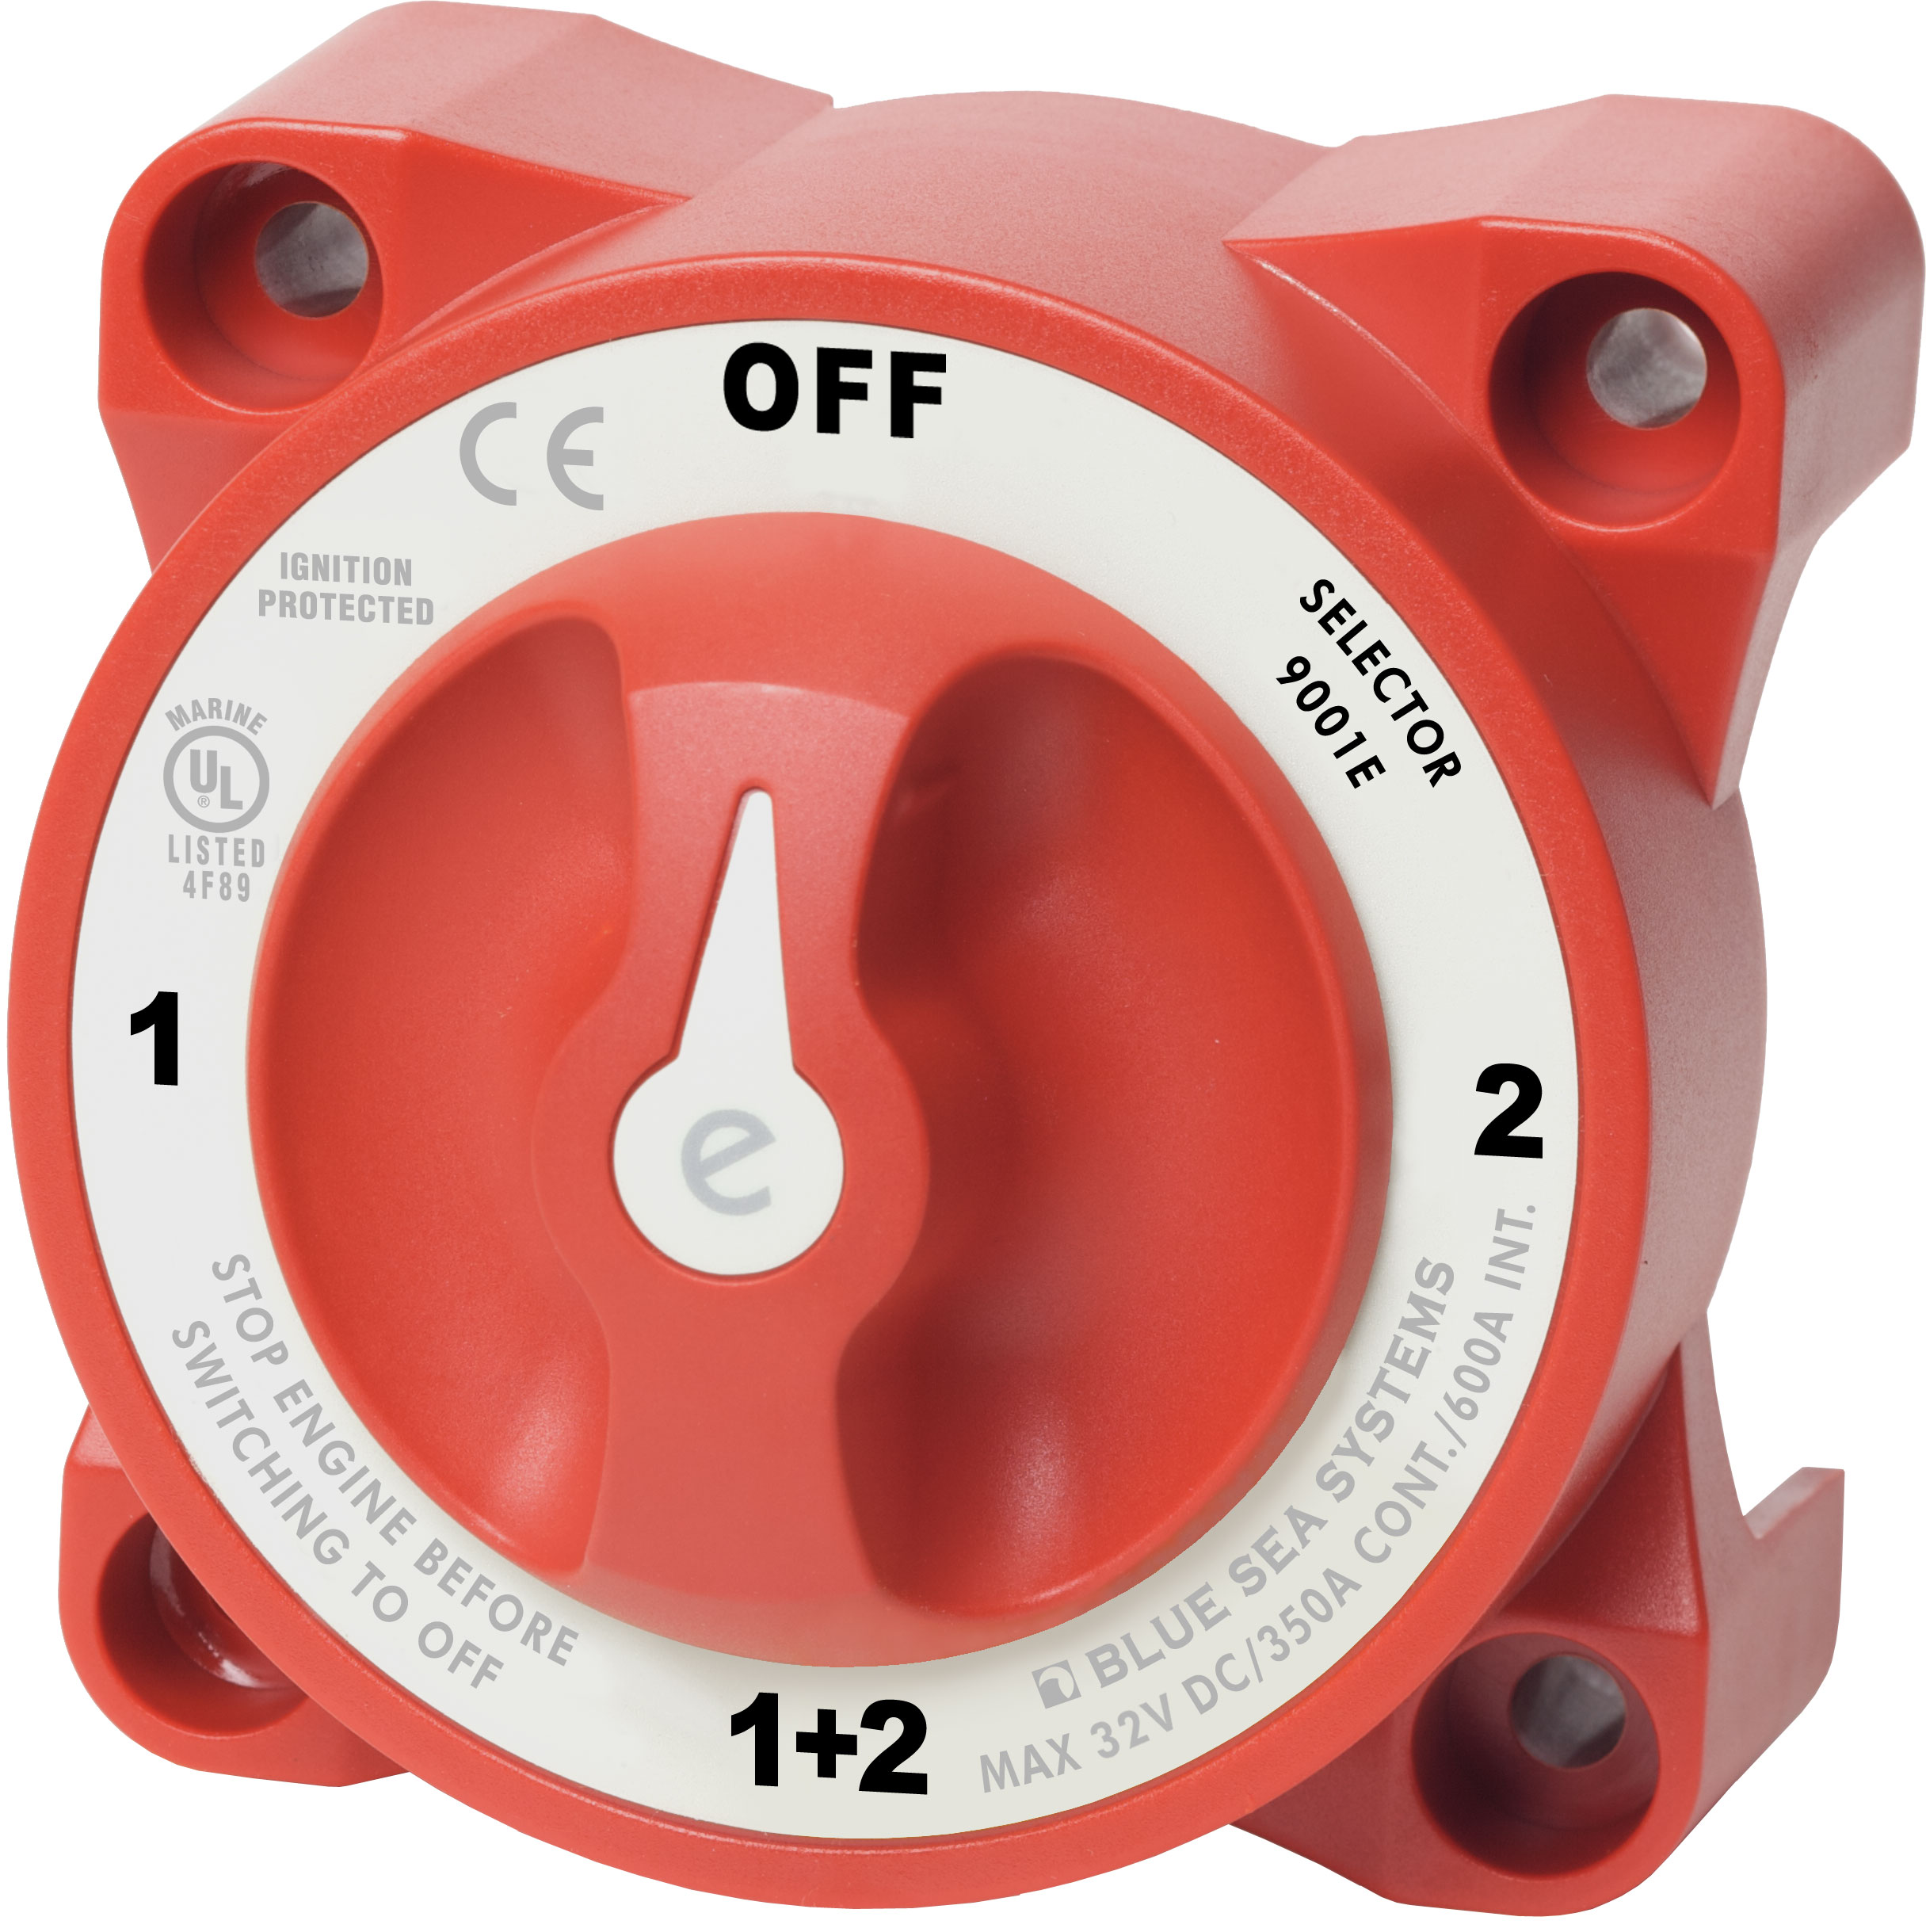 marine battery selector switch wiring diagram lawn sprinkler valve e-series - blue sea systems